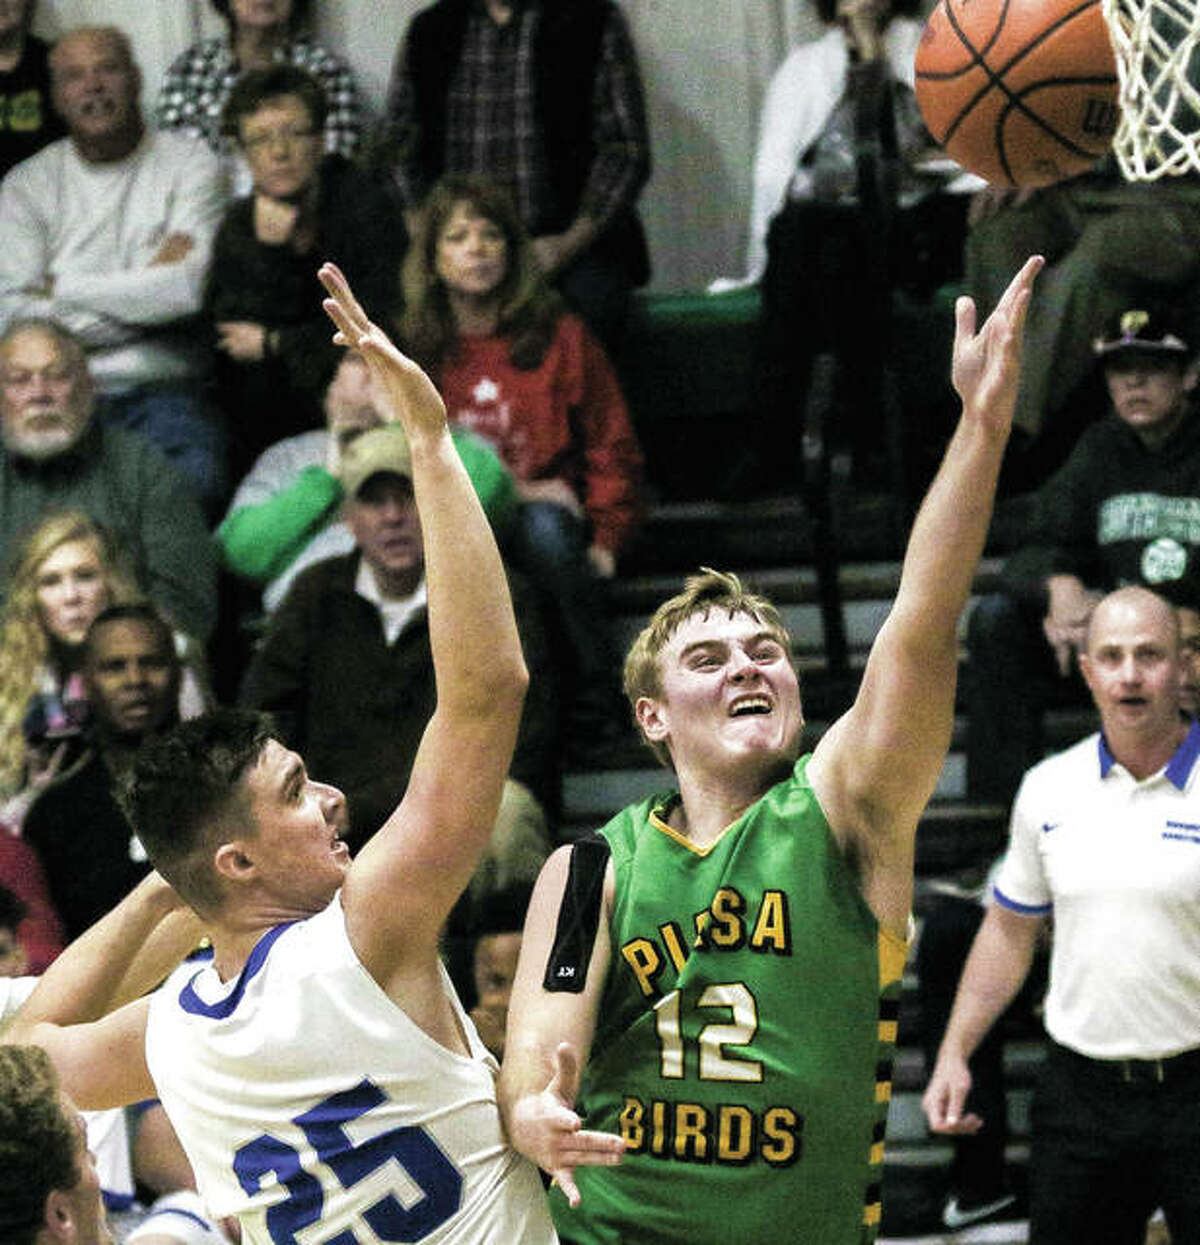 Southwestern's Caleb Robinson (right) slips past Marquette Catholic's Jake Hall to put up a shot during a semifinal game at the Metro East Lutheran Tournament on Nov. 24 in Edwardsville. That loss to the Explorers is the Piasa Birds' lone defeat in a 9-1 start.